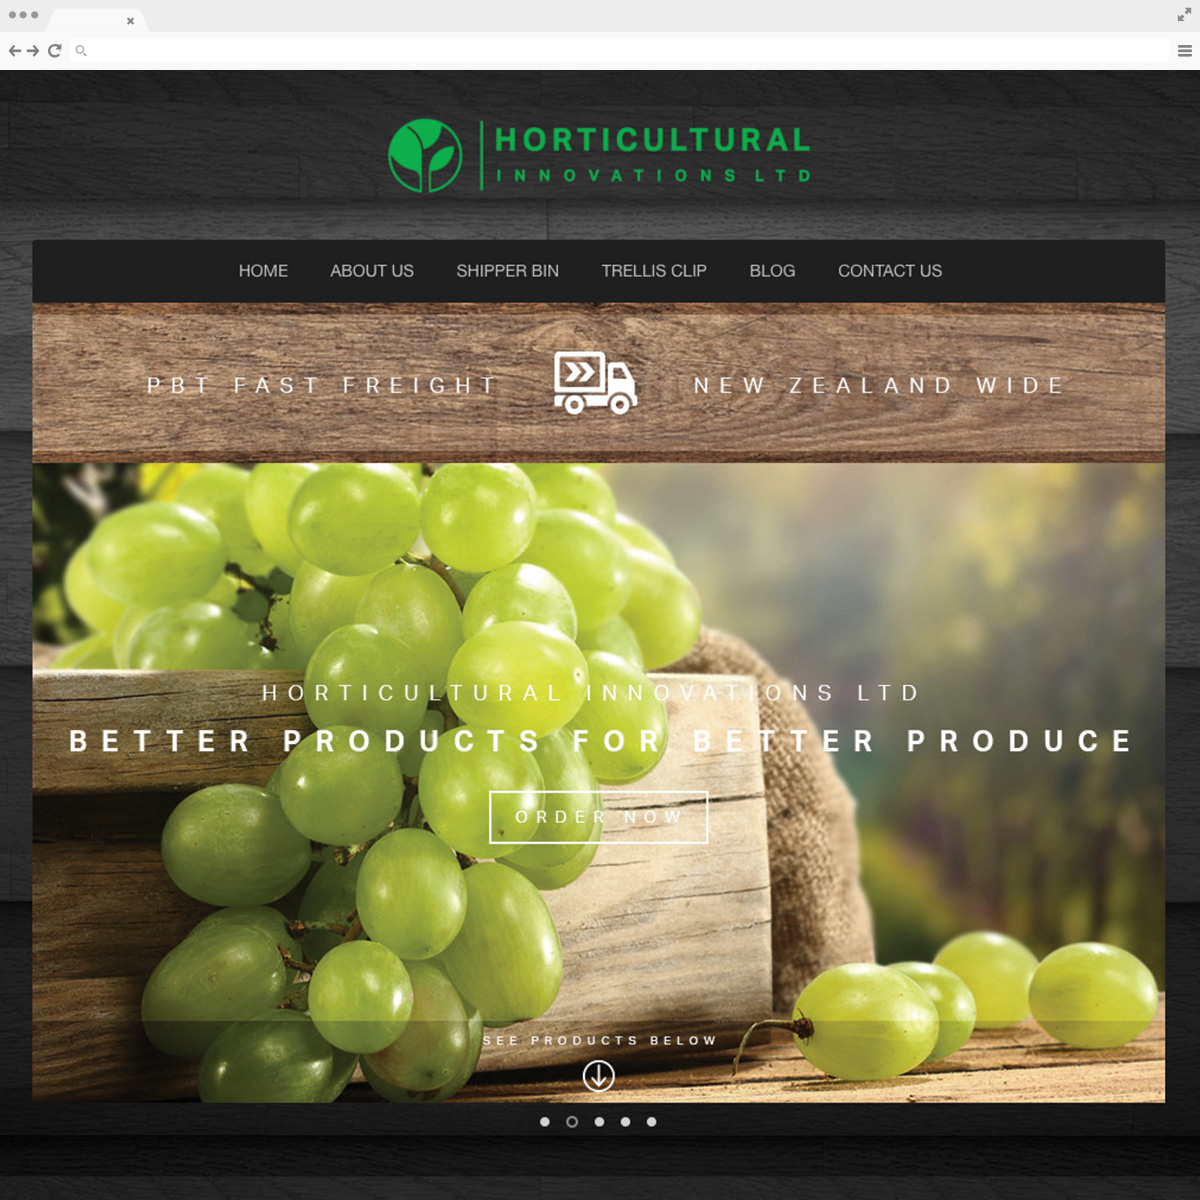 Horticultural Innovations